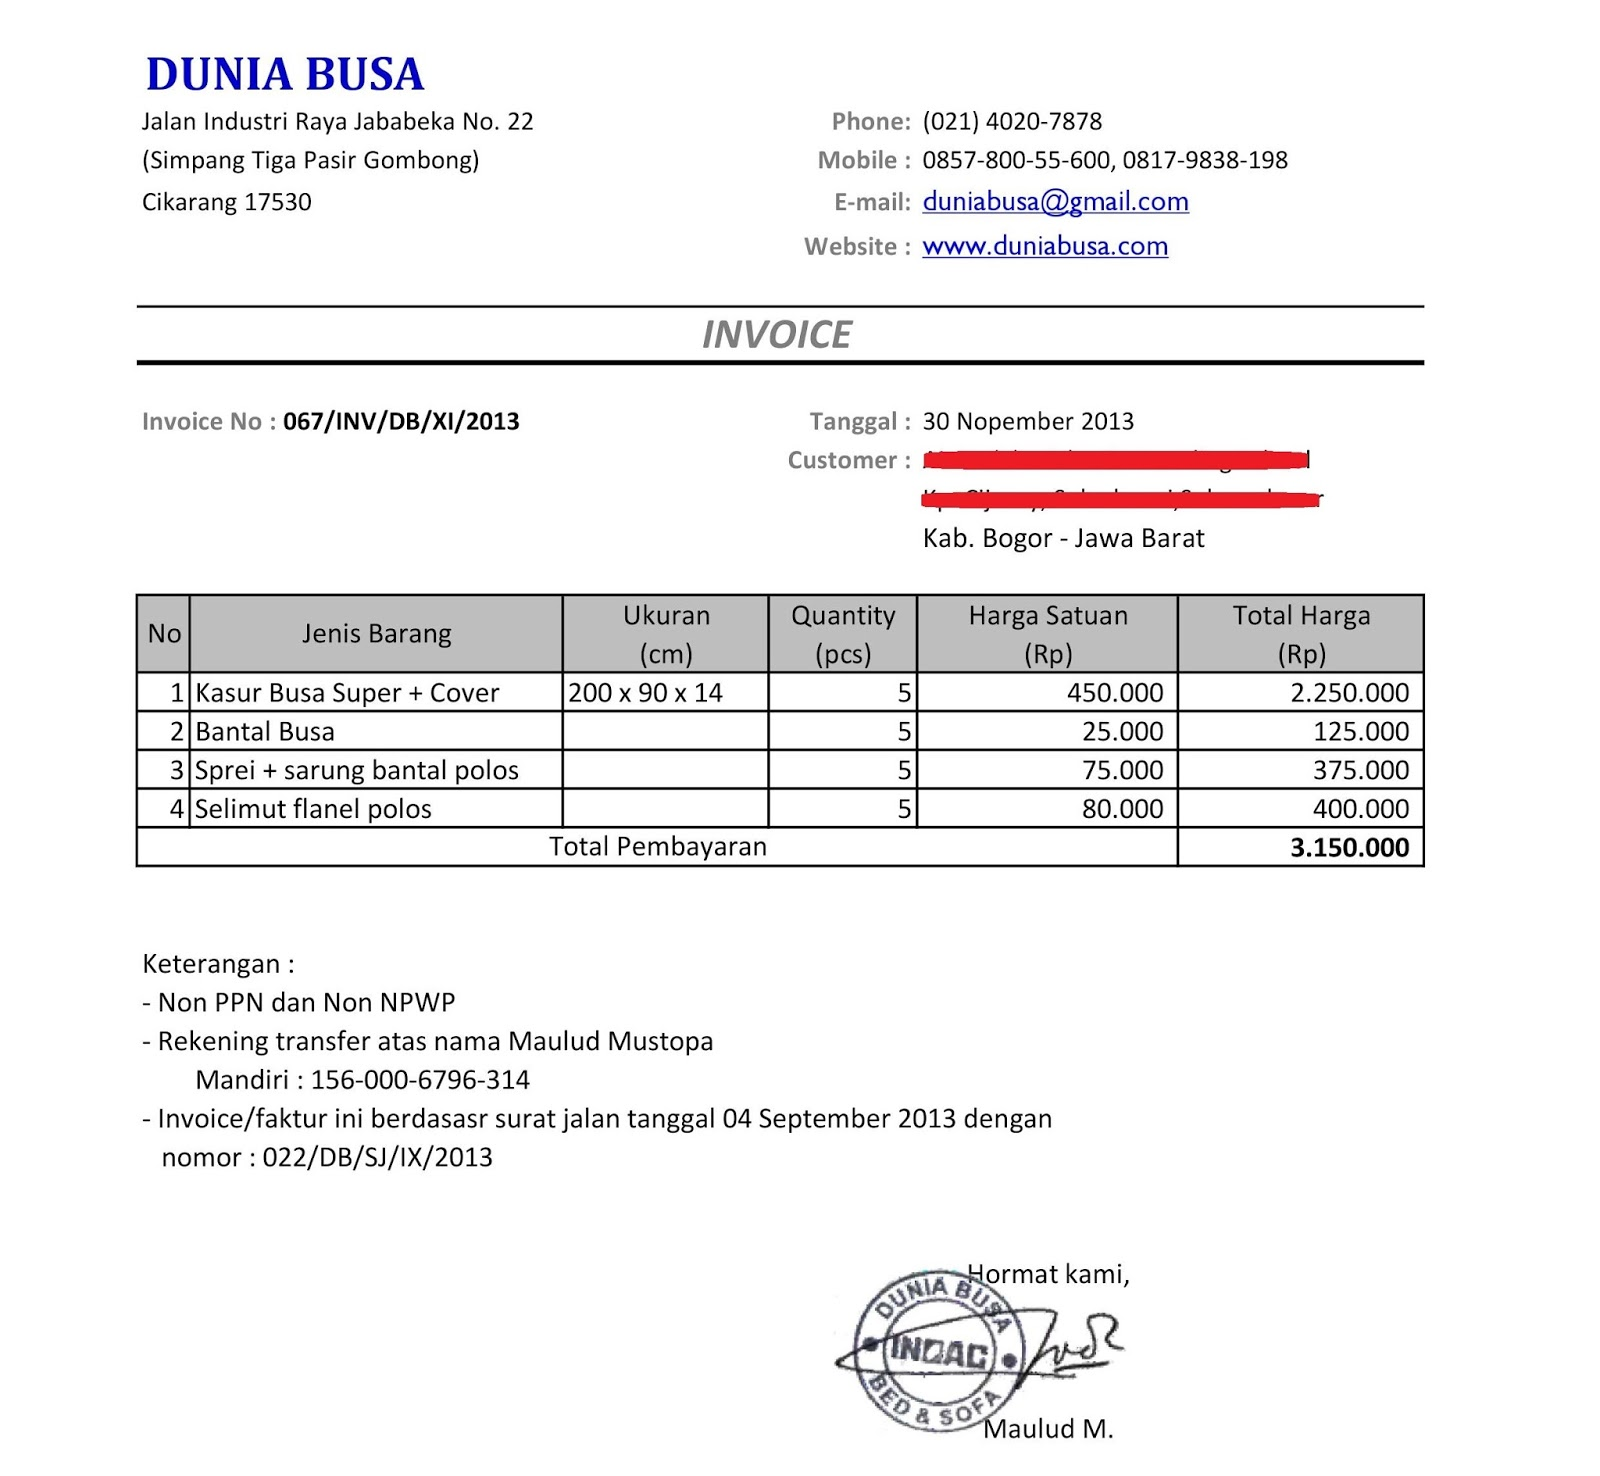 Ebitus  Unique Free Invoice Online  Create Invoice Online  Invoice Template  With Likable Contoh Format Invoice Atau Surat Tagihan  Brankas Arsip  Free Invoice Online With Endearing Free Hvac Invoice Template Also Blank Printable Invoice Template Free In Addition Hvac Invoice Software And Tax Invoice Definition As Well As Generic Invoices Additionally Ar Invoice From Sklepco With Ebitus  Likable Free Invoice Online  Create Invoice Online  Invoice Template  With Endearing Contoh Format Invoice Atau Surat Tagihan  Brankas Arsip  Free Invoice Online And Unique Free Hvac Invoice Template Also Blank Printable Invoice Template Free In Addition Hvac Invoice Software From Sklepco